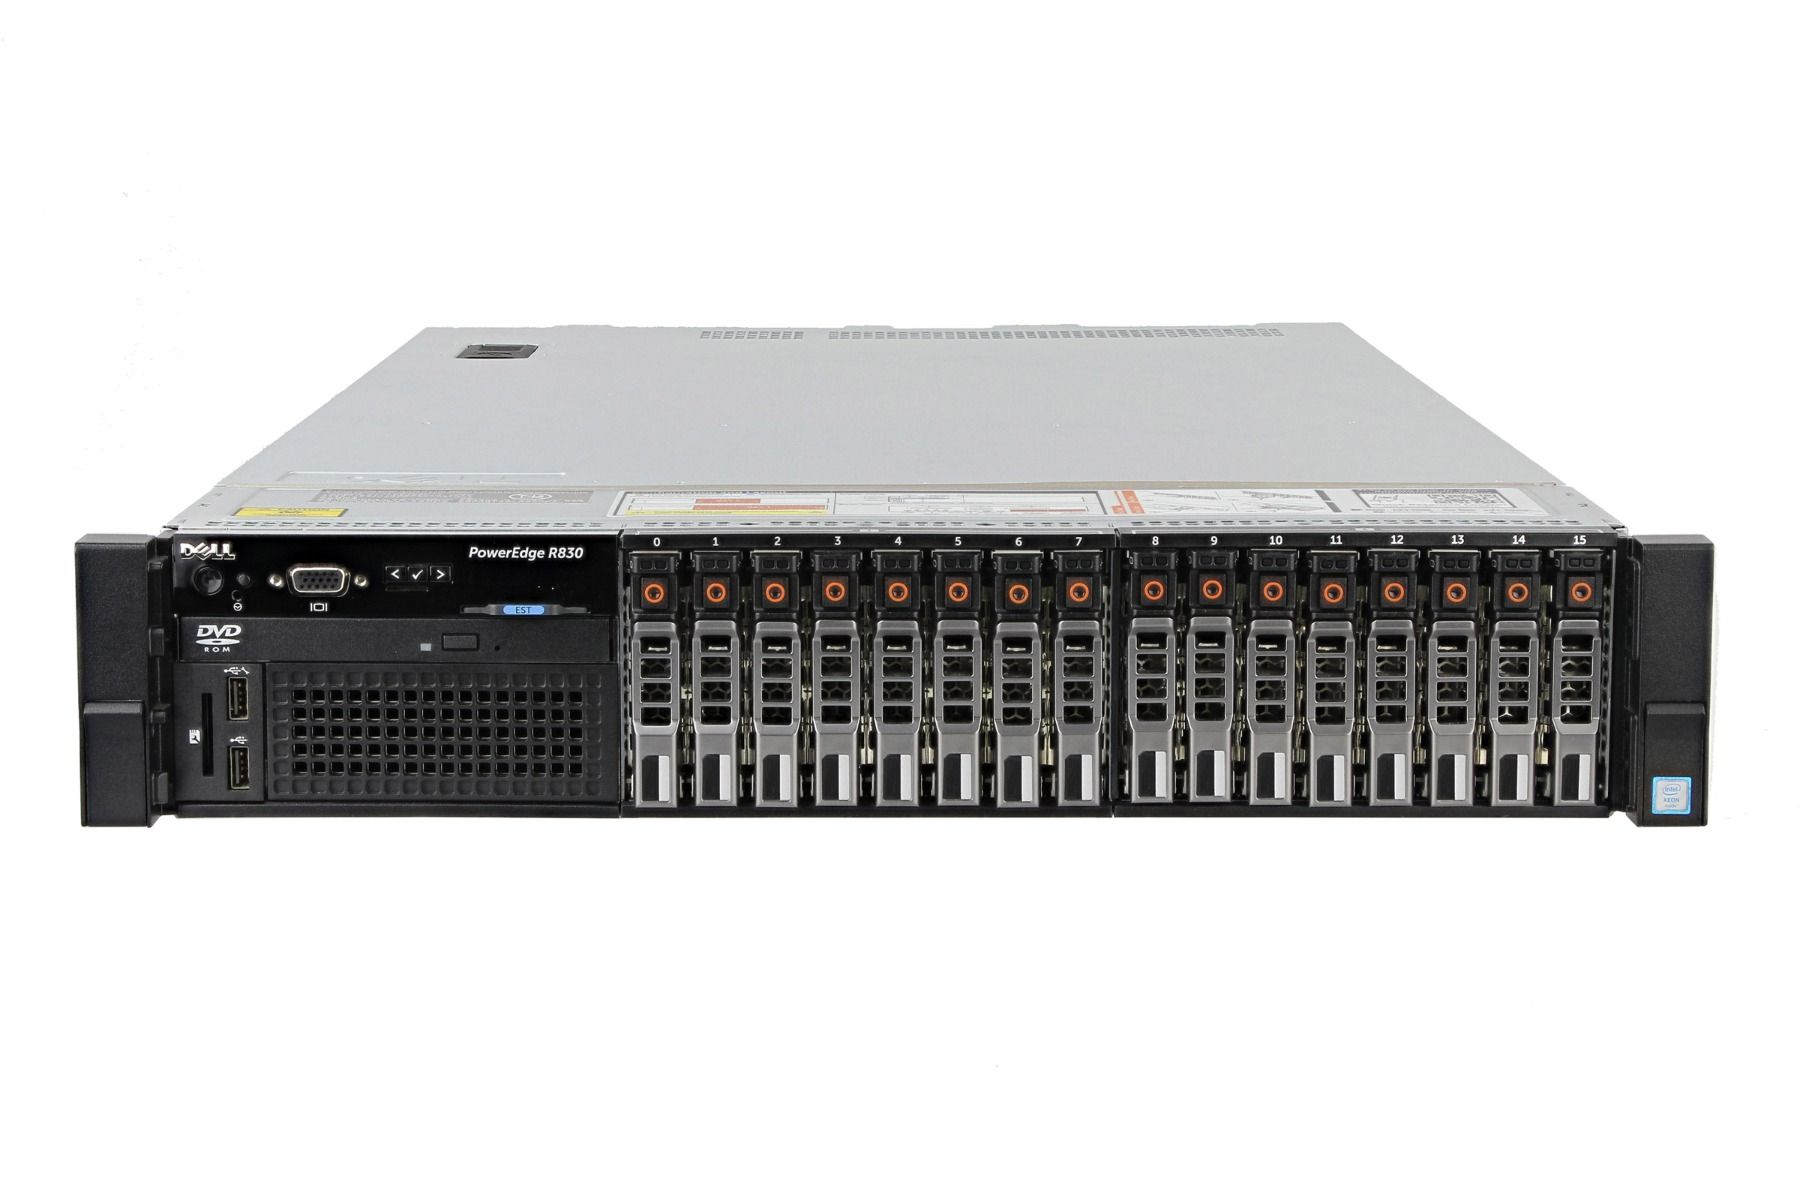 Dell PowerEdge R830 Configure To Order